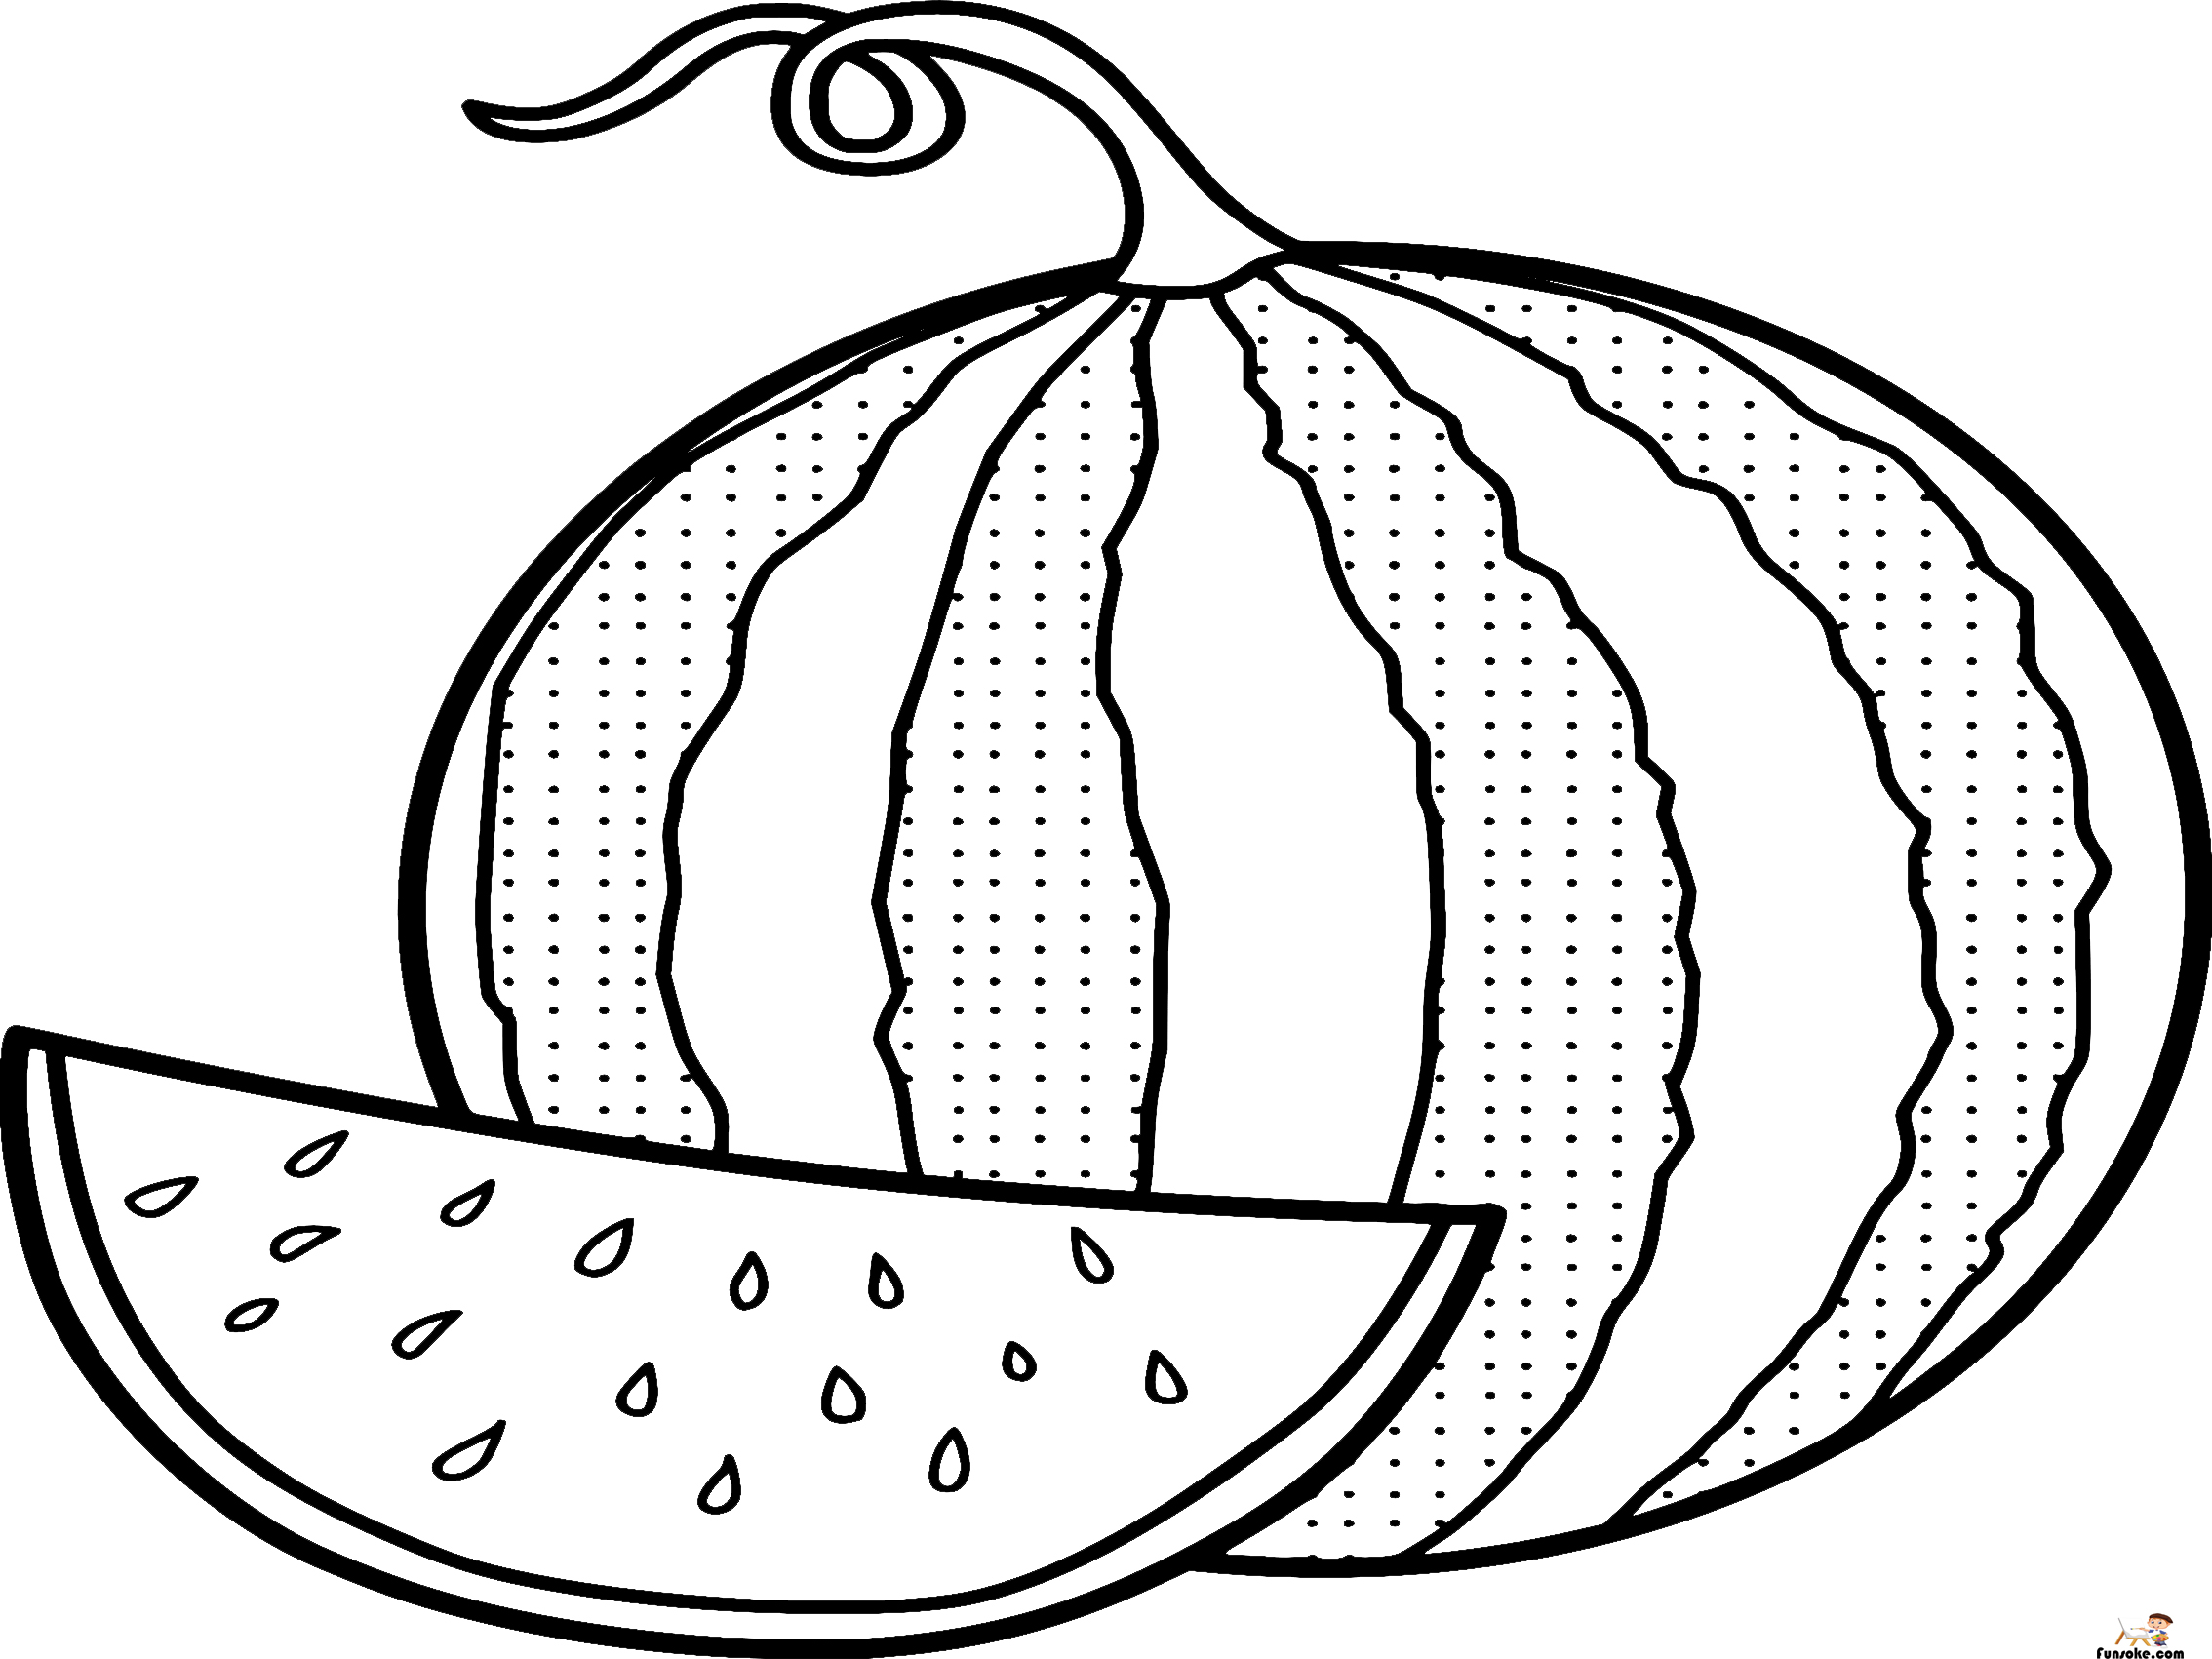 watermelon for coloring watermelon coloring pages preschoolers funsoke coloring watermelon for